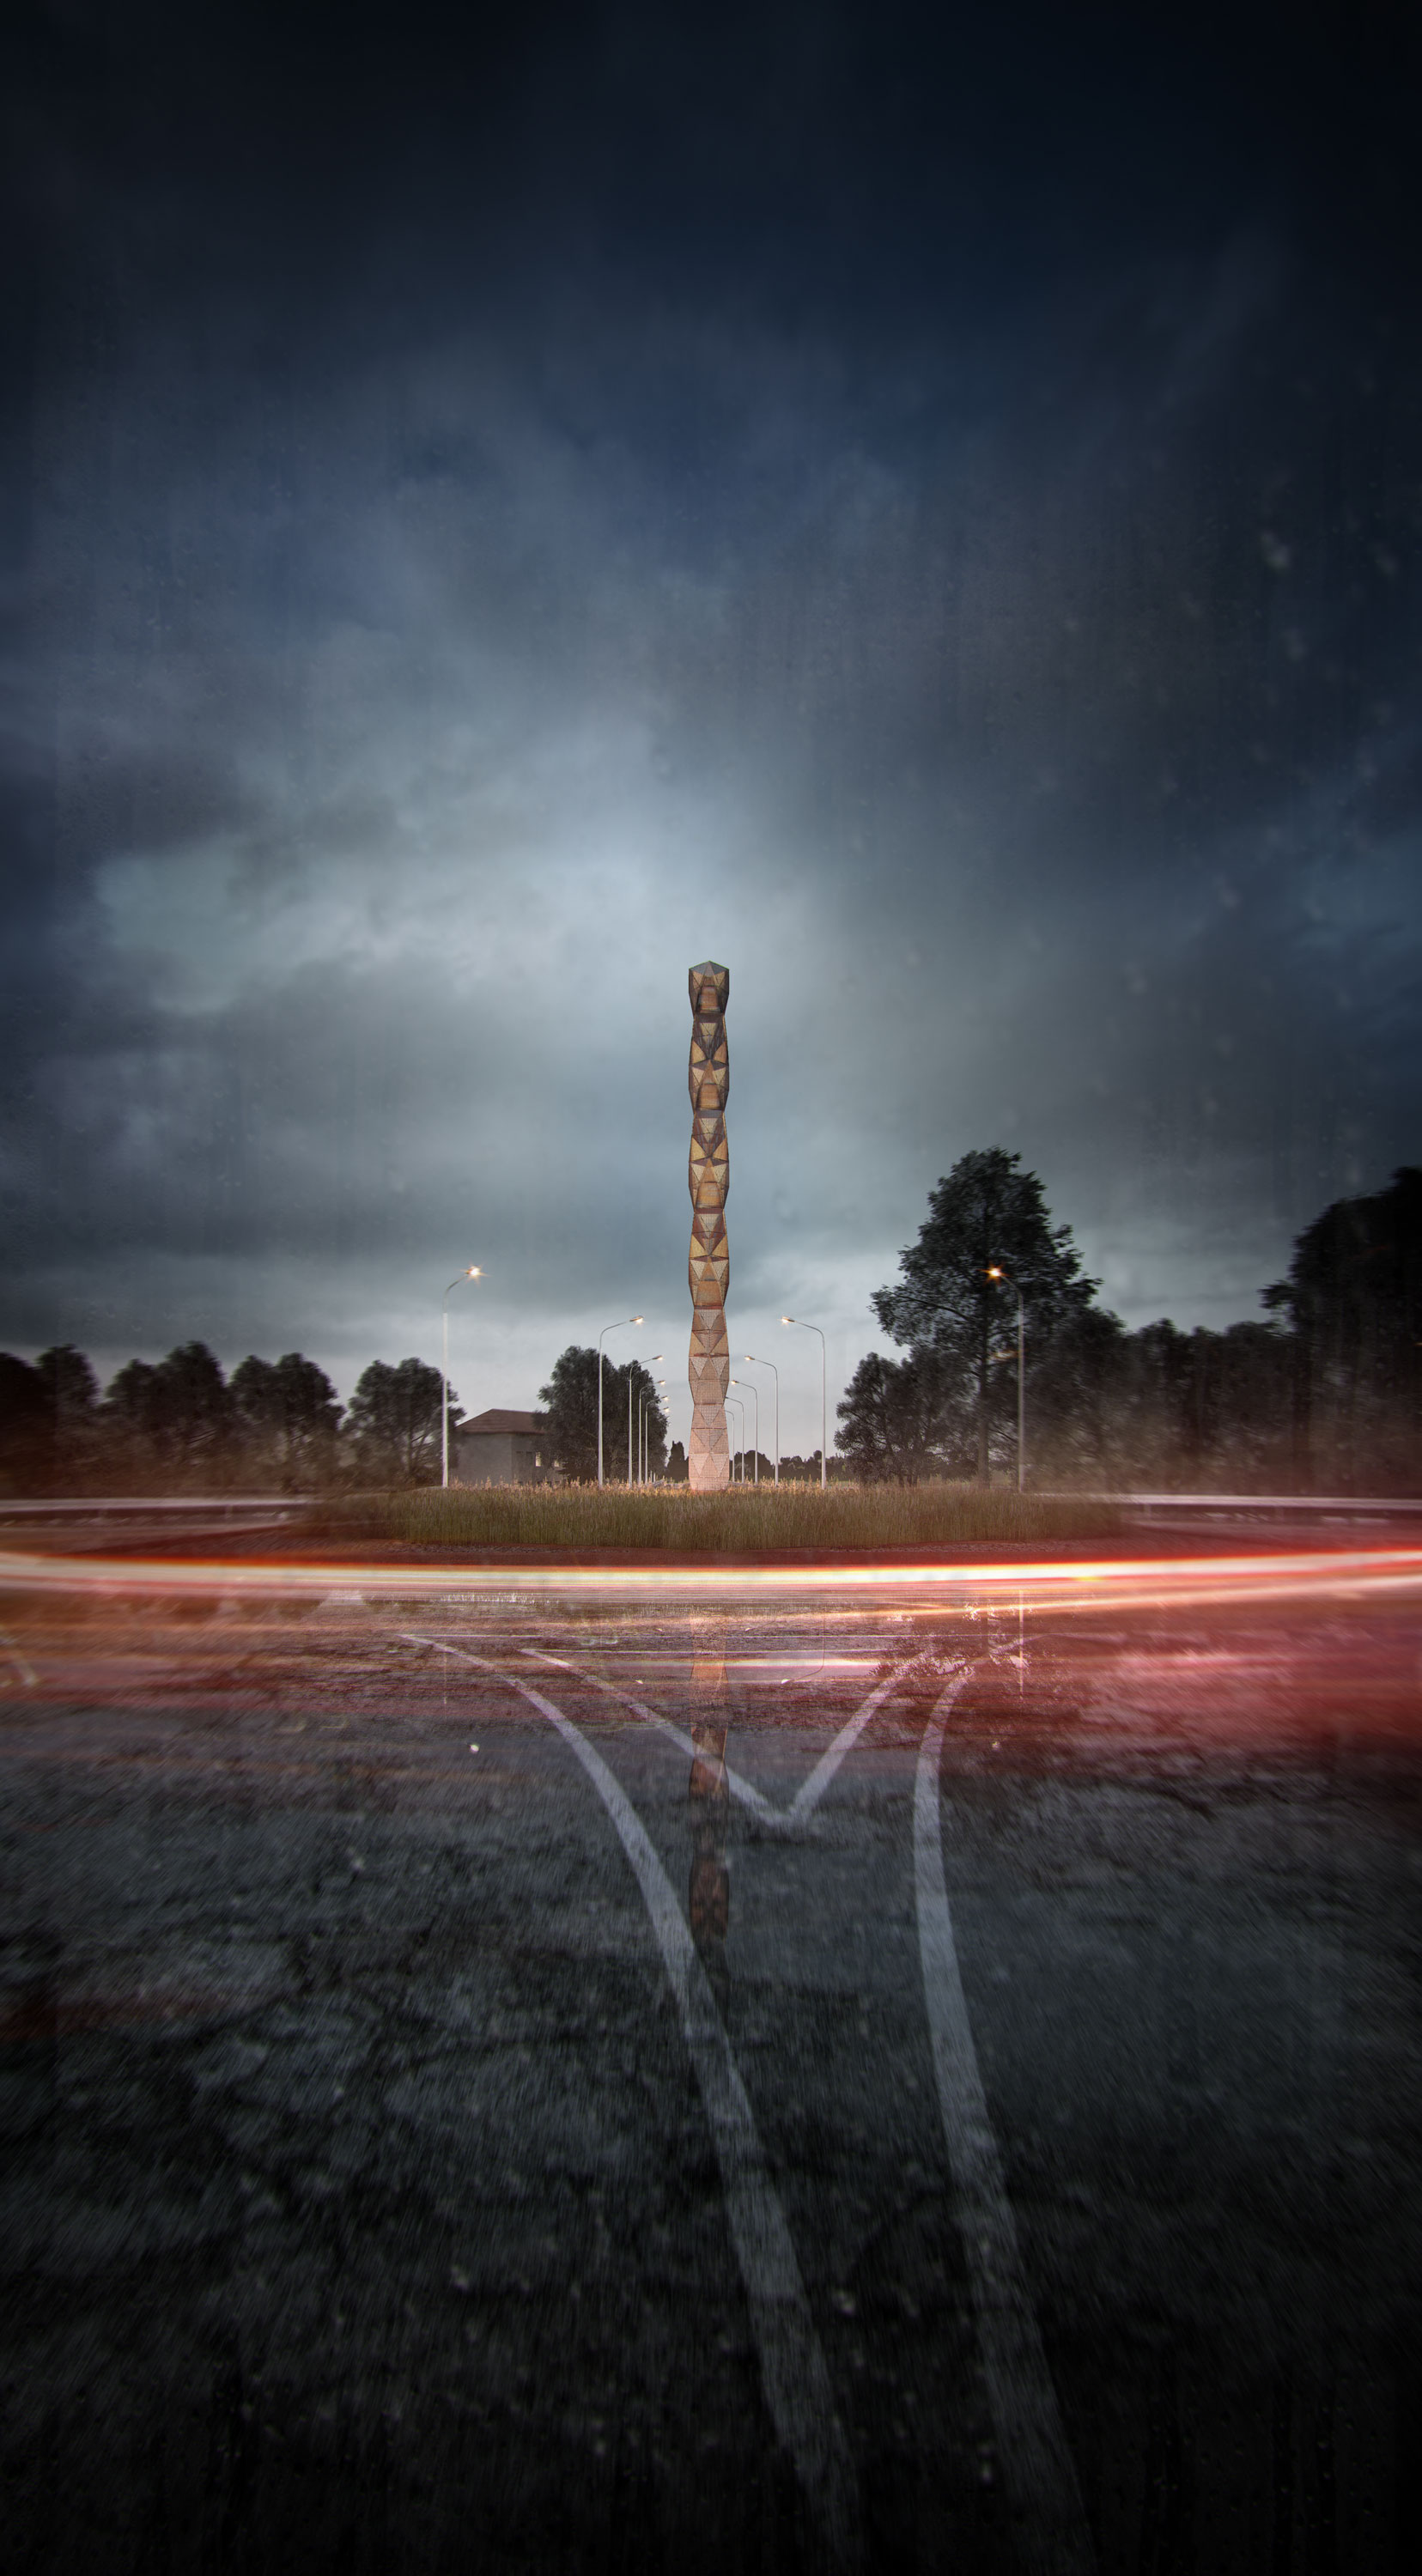 render-YAC-lamborghini-road-monument-competition-young-architects-competitions-corten